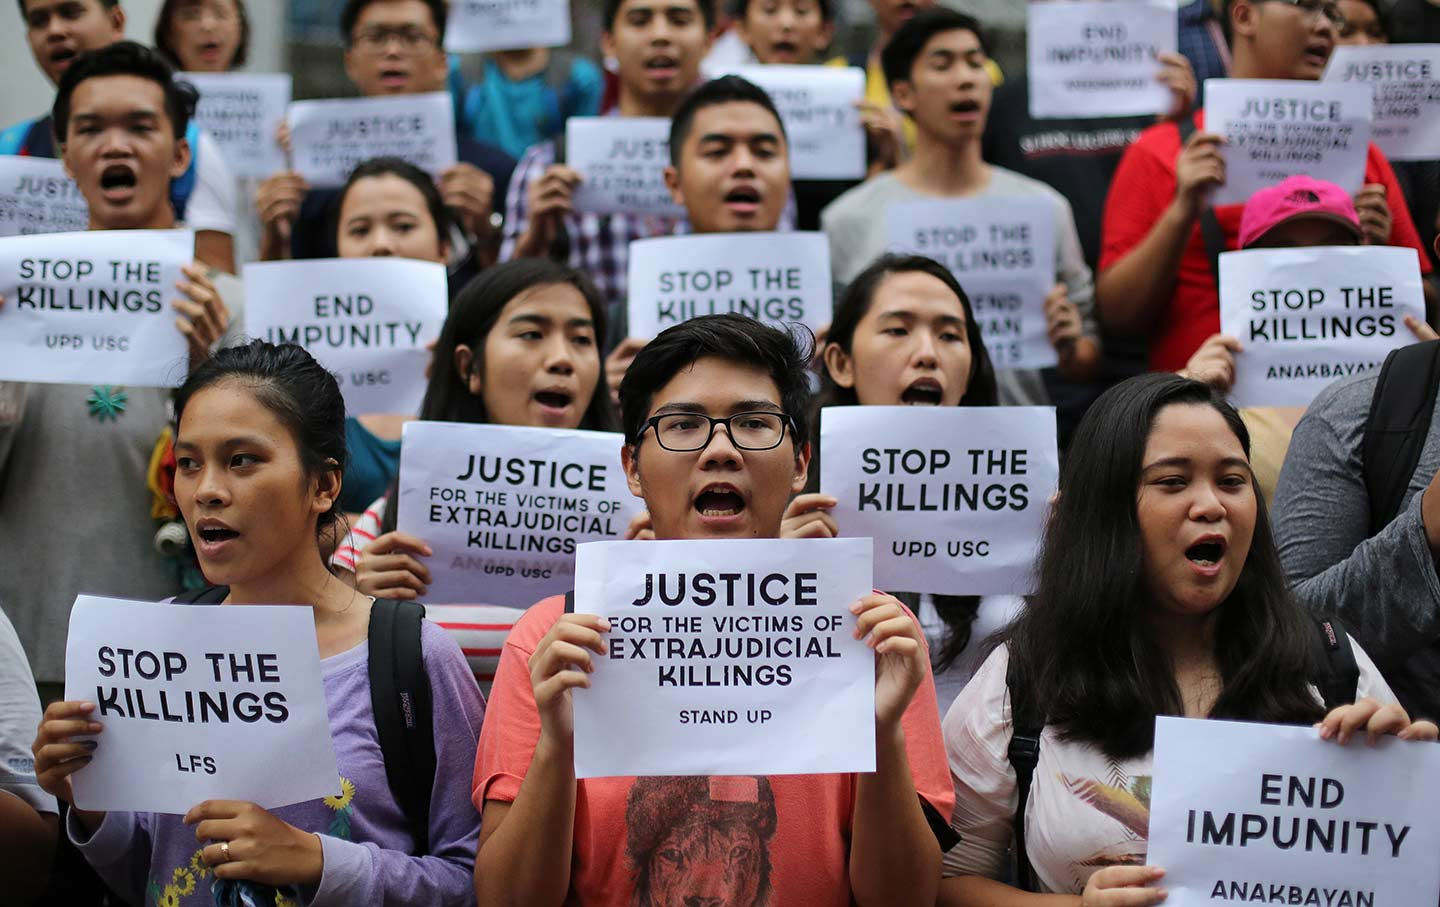 Students at the University of the Philippines protest Duterte